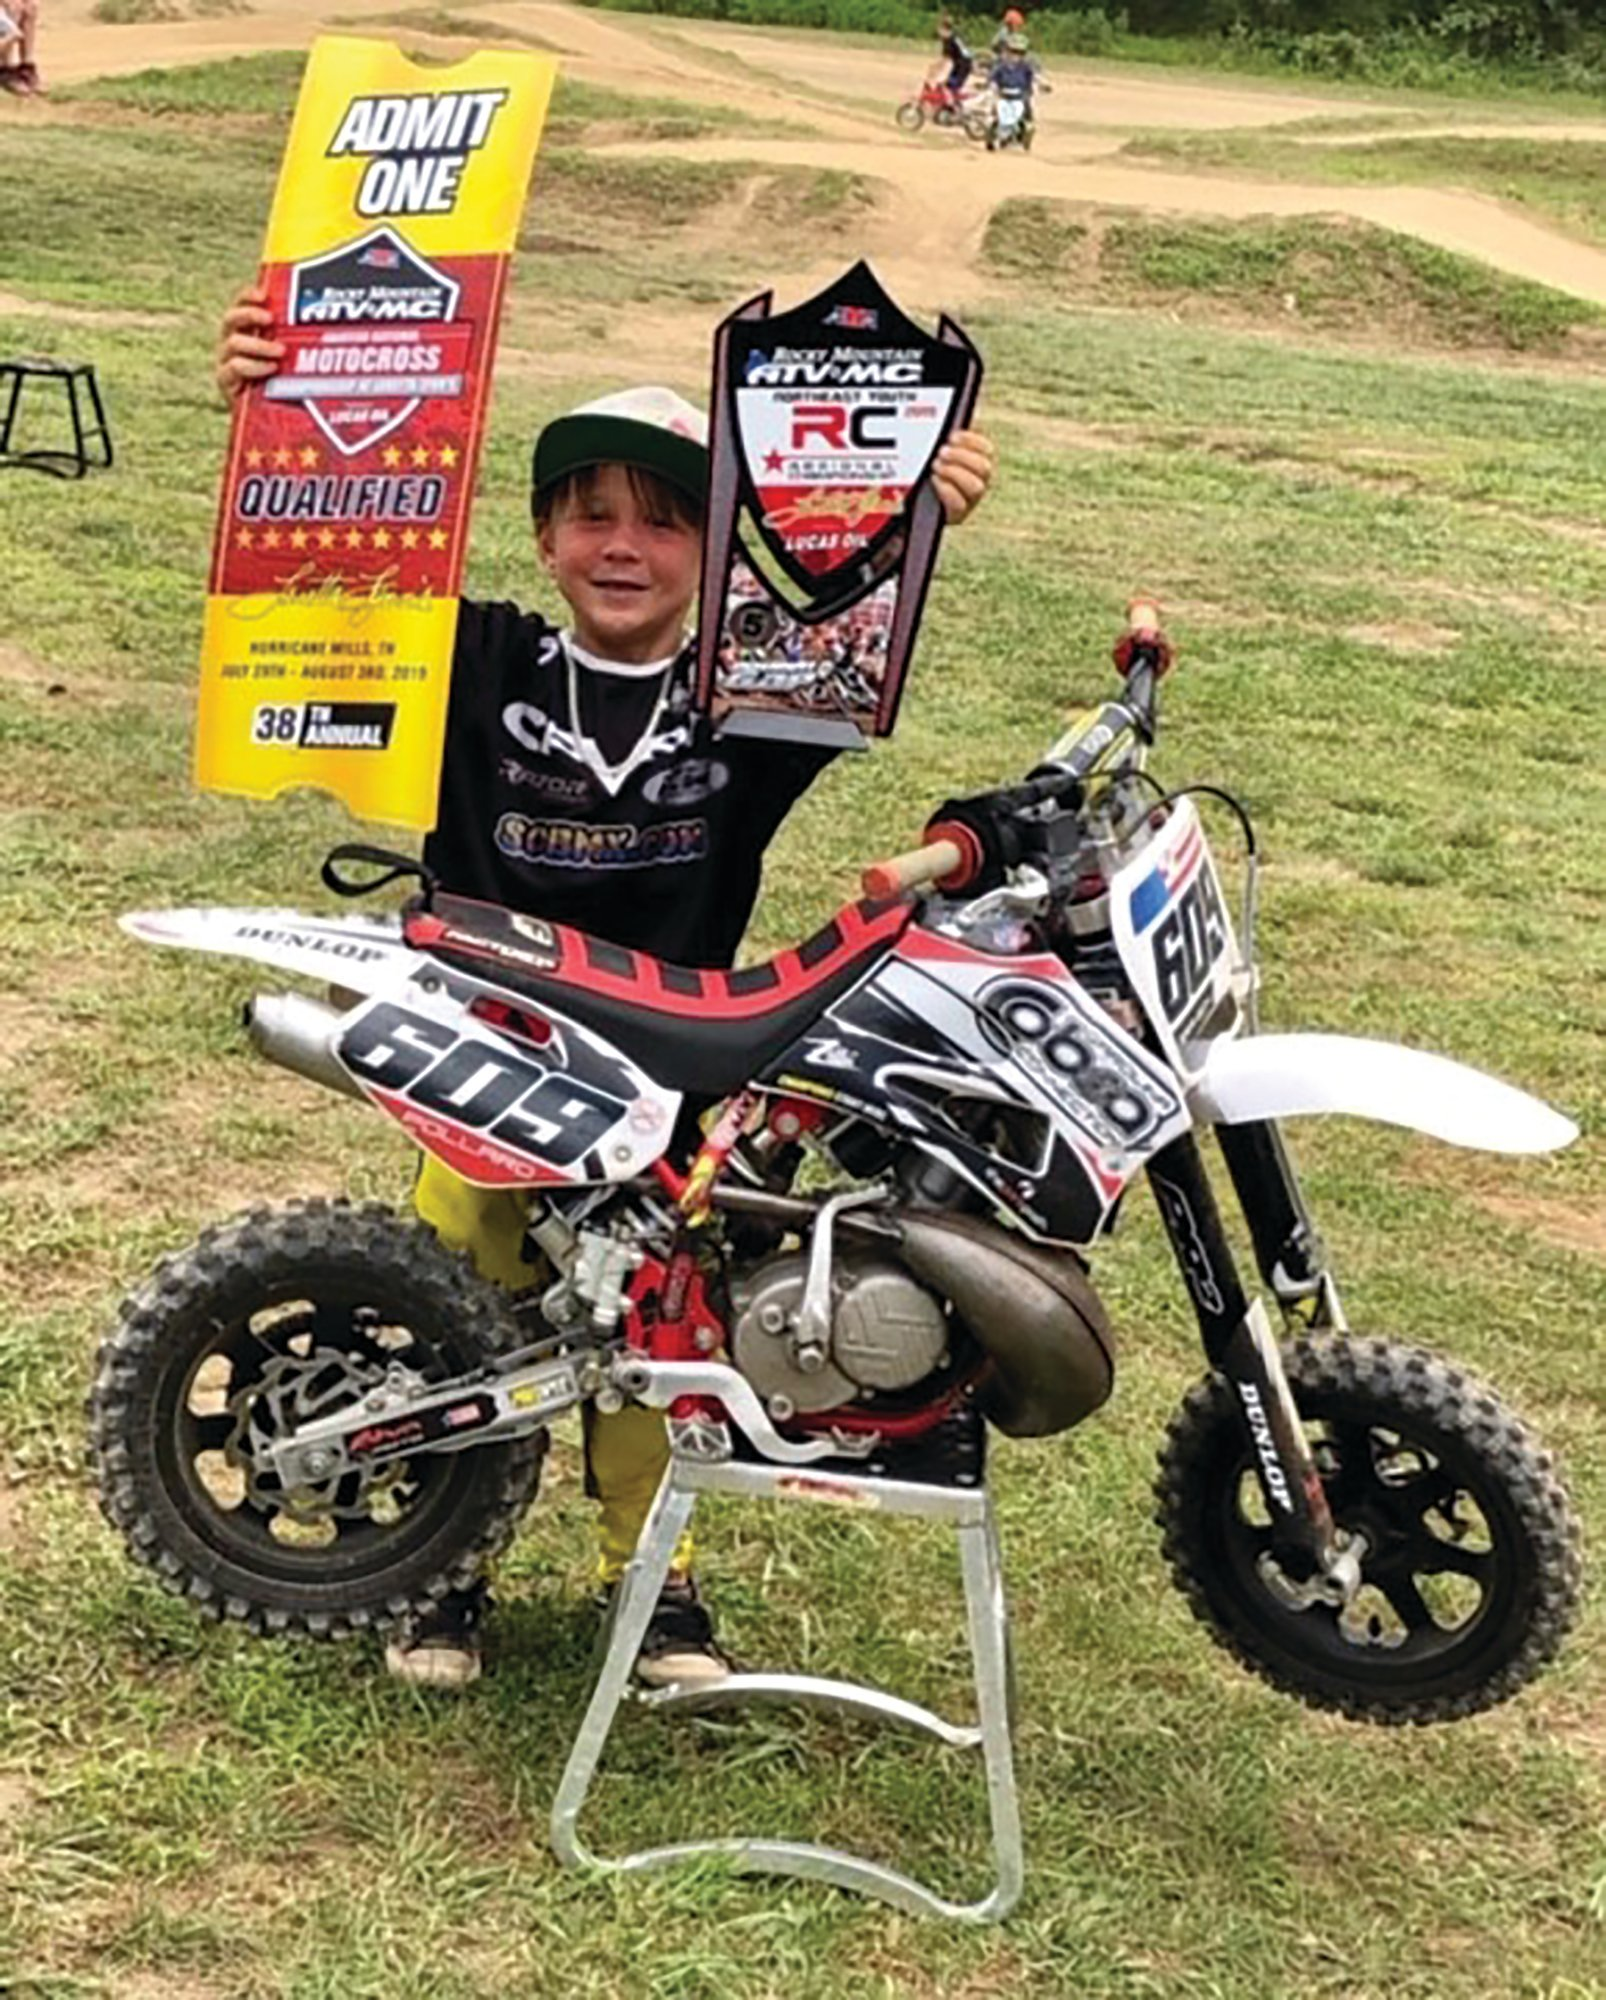 "PHOTOS PROVIDEDWilliam ""Branson"" Pollard displays the tickets he received for earning a berth in the 38th Annual Rocky Mountain ATV/MC AMA Amateur National Motocross Championship."